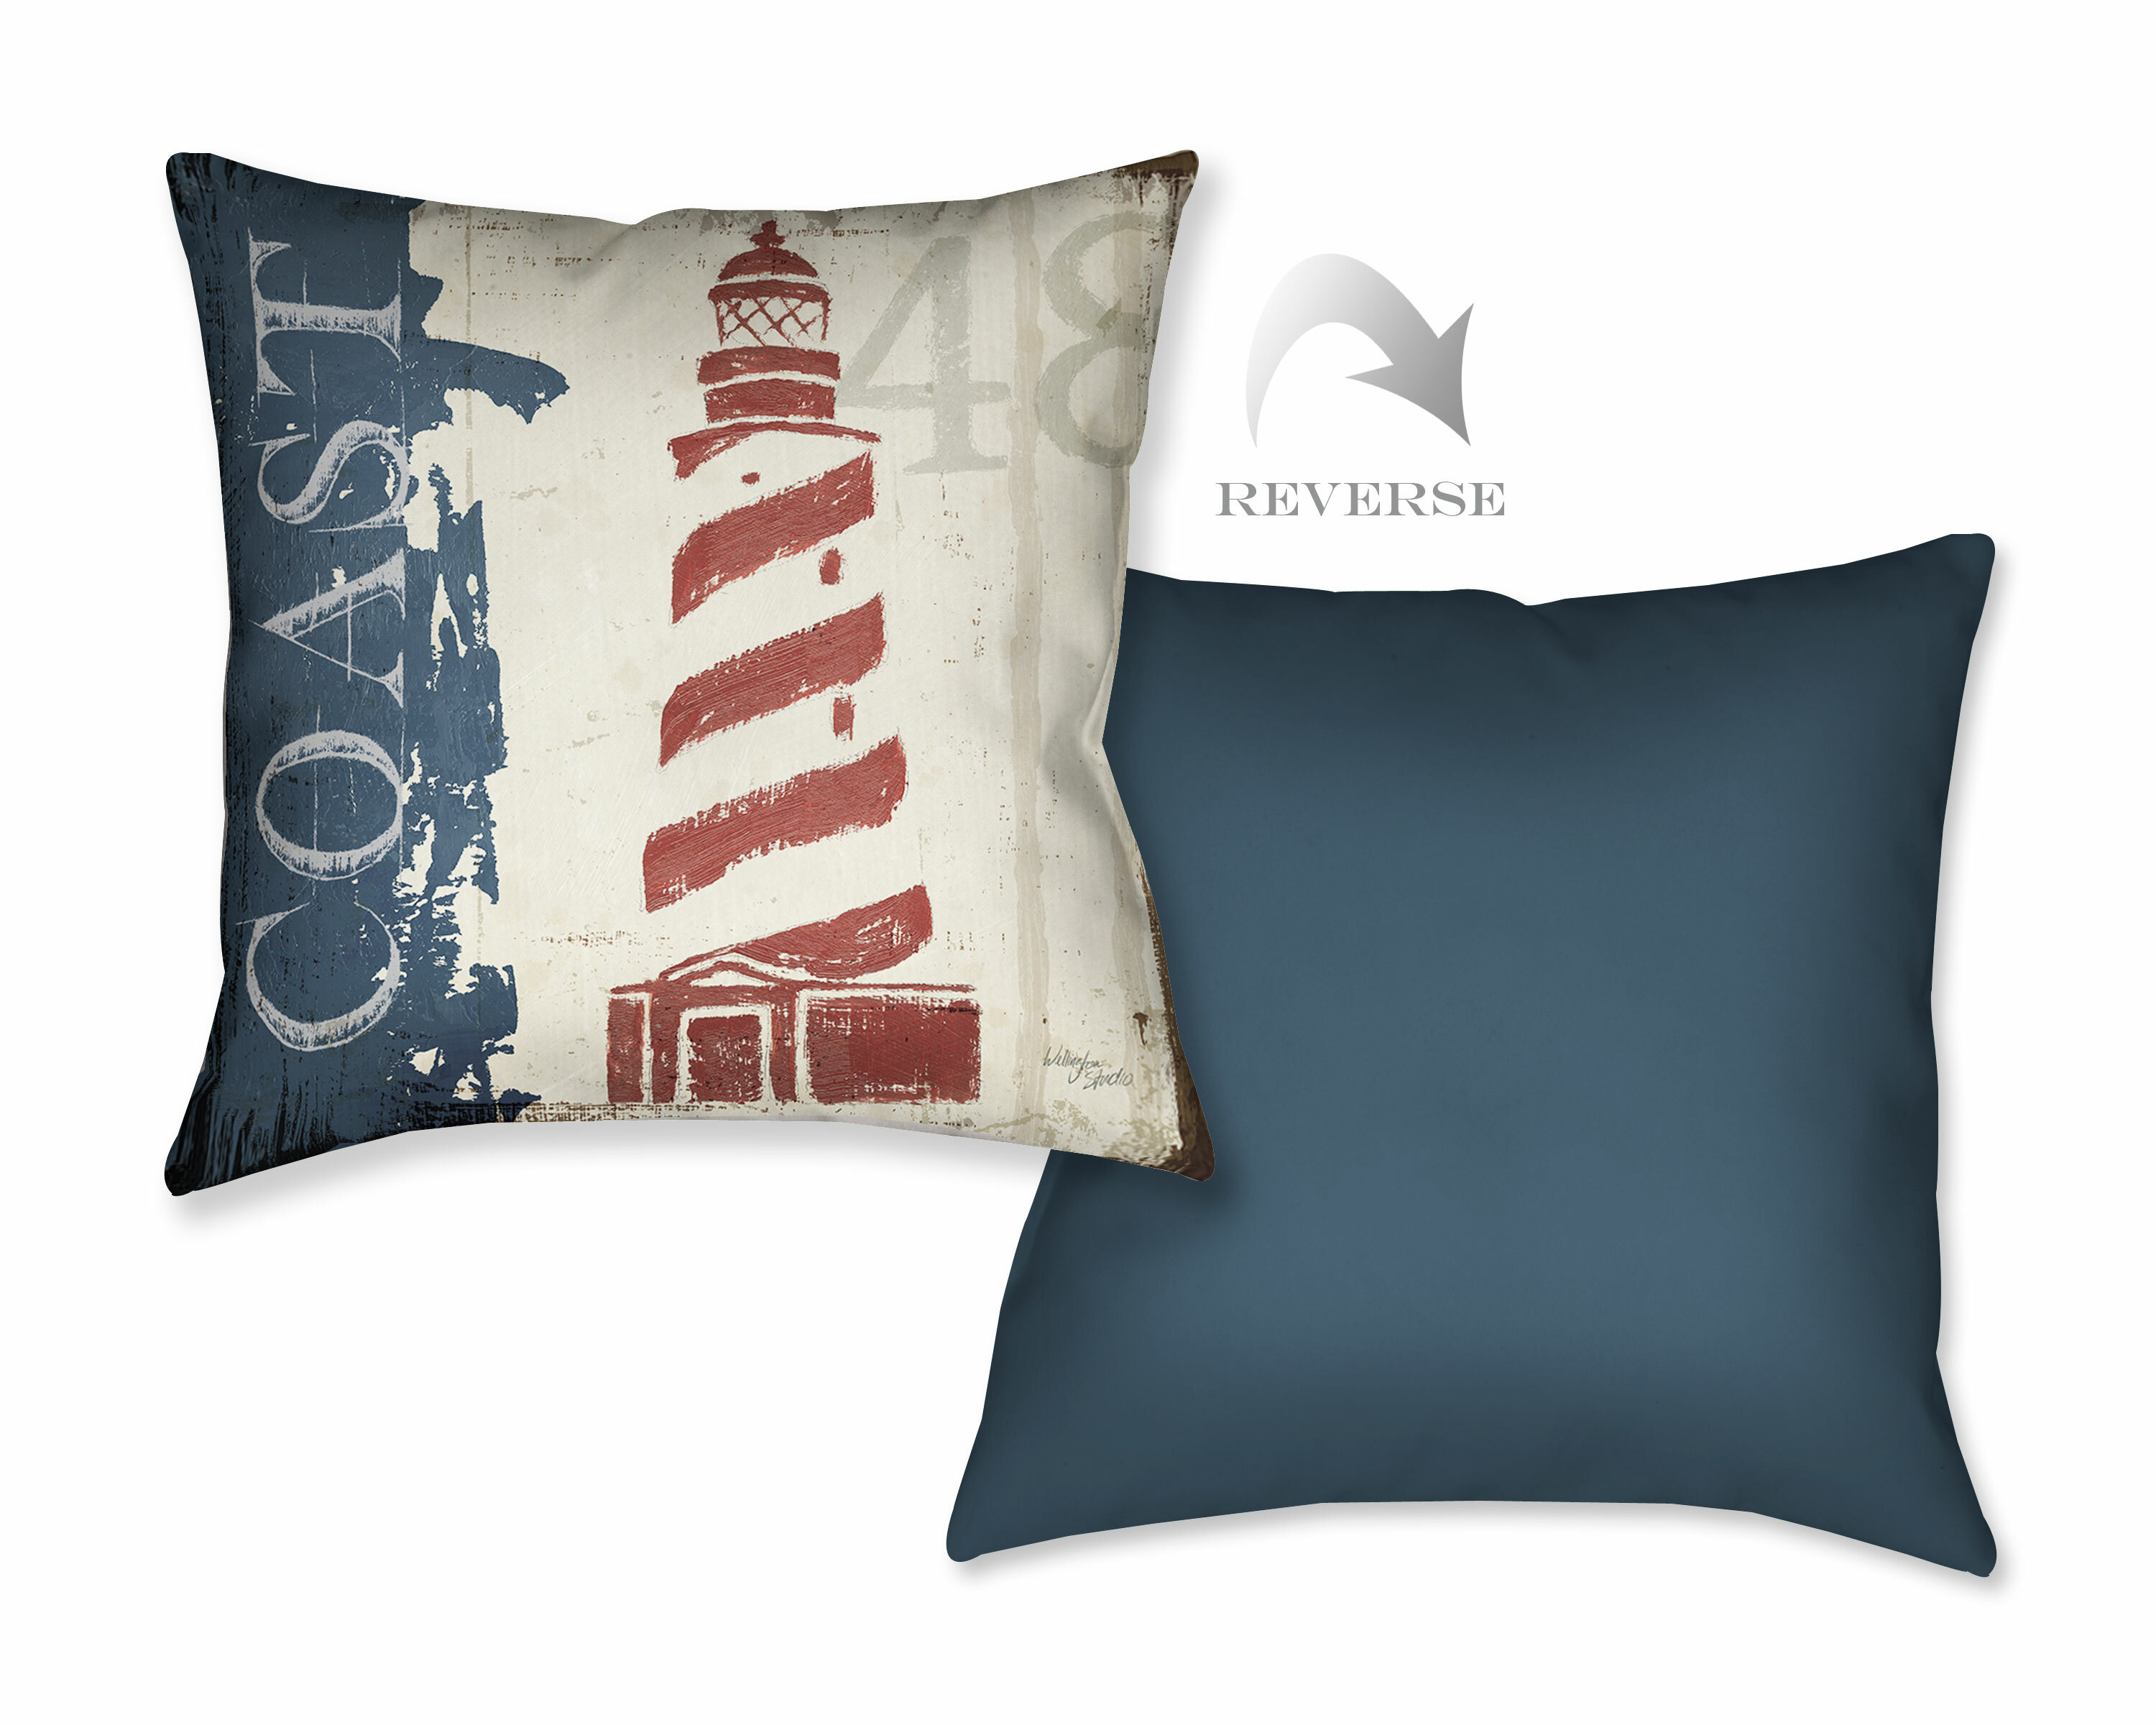 dk buoys fullxfull gift zoom il vintage pillows pillow nautical buoy listing en throw fisherman